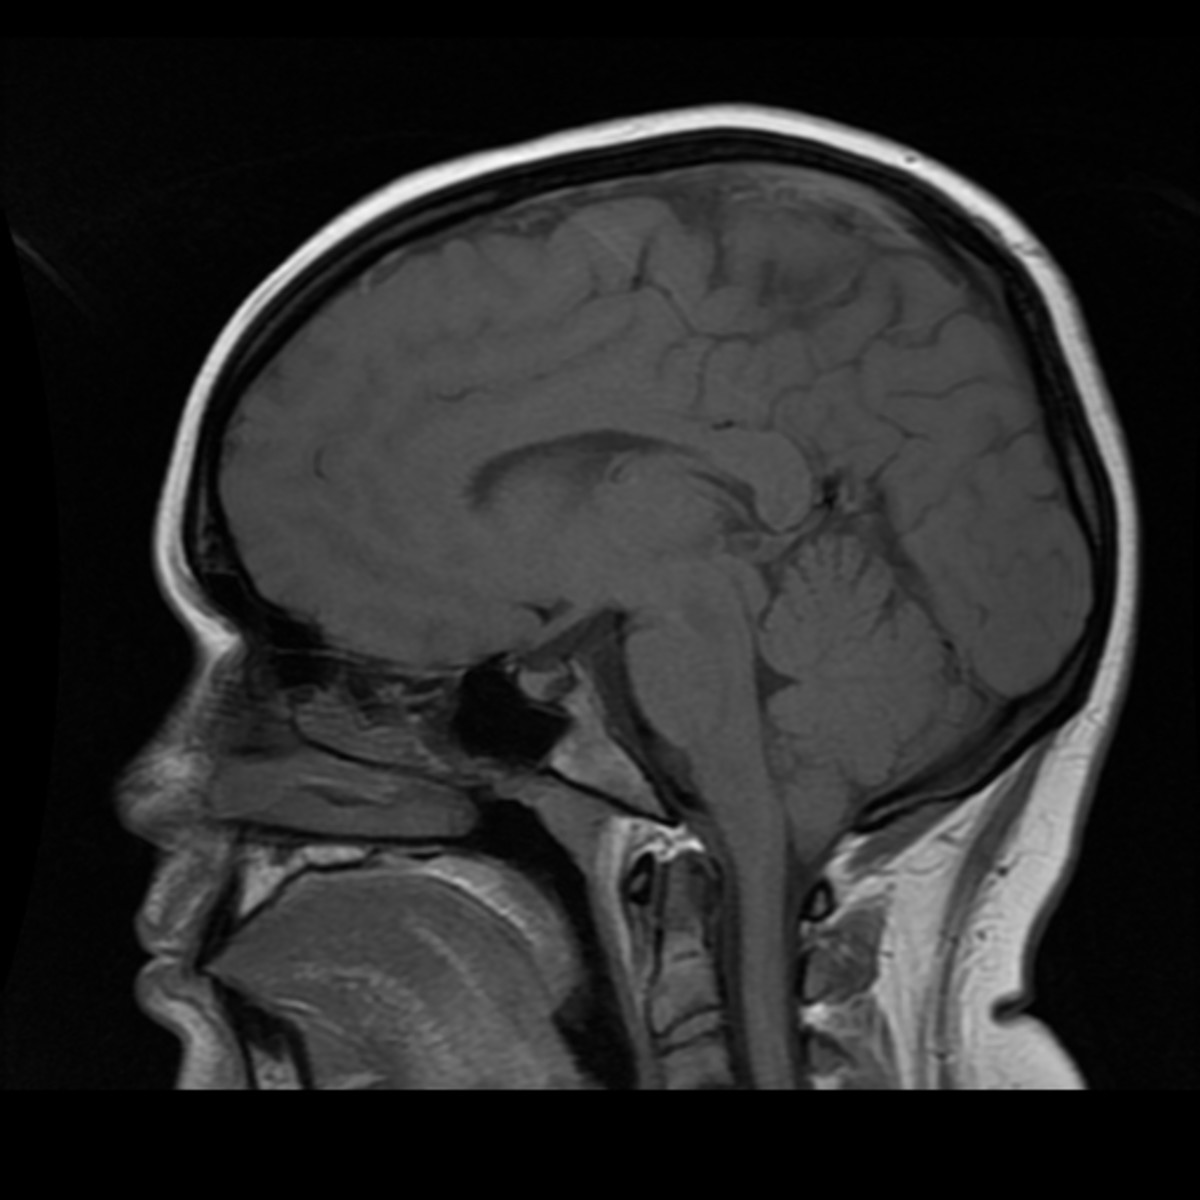 A photo of one of my MRIs showing the herniation of my brain, around 7mm in length.